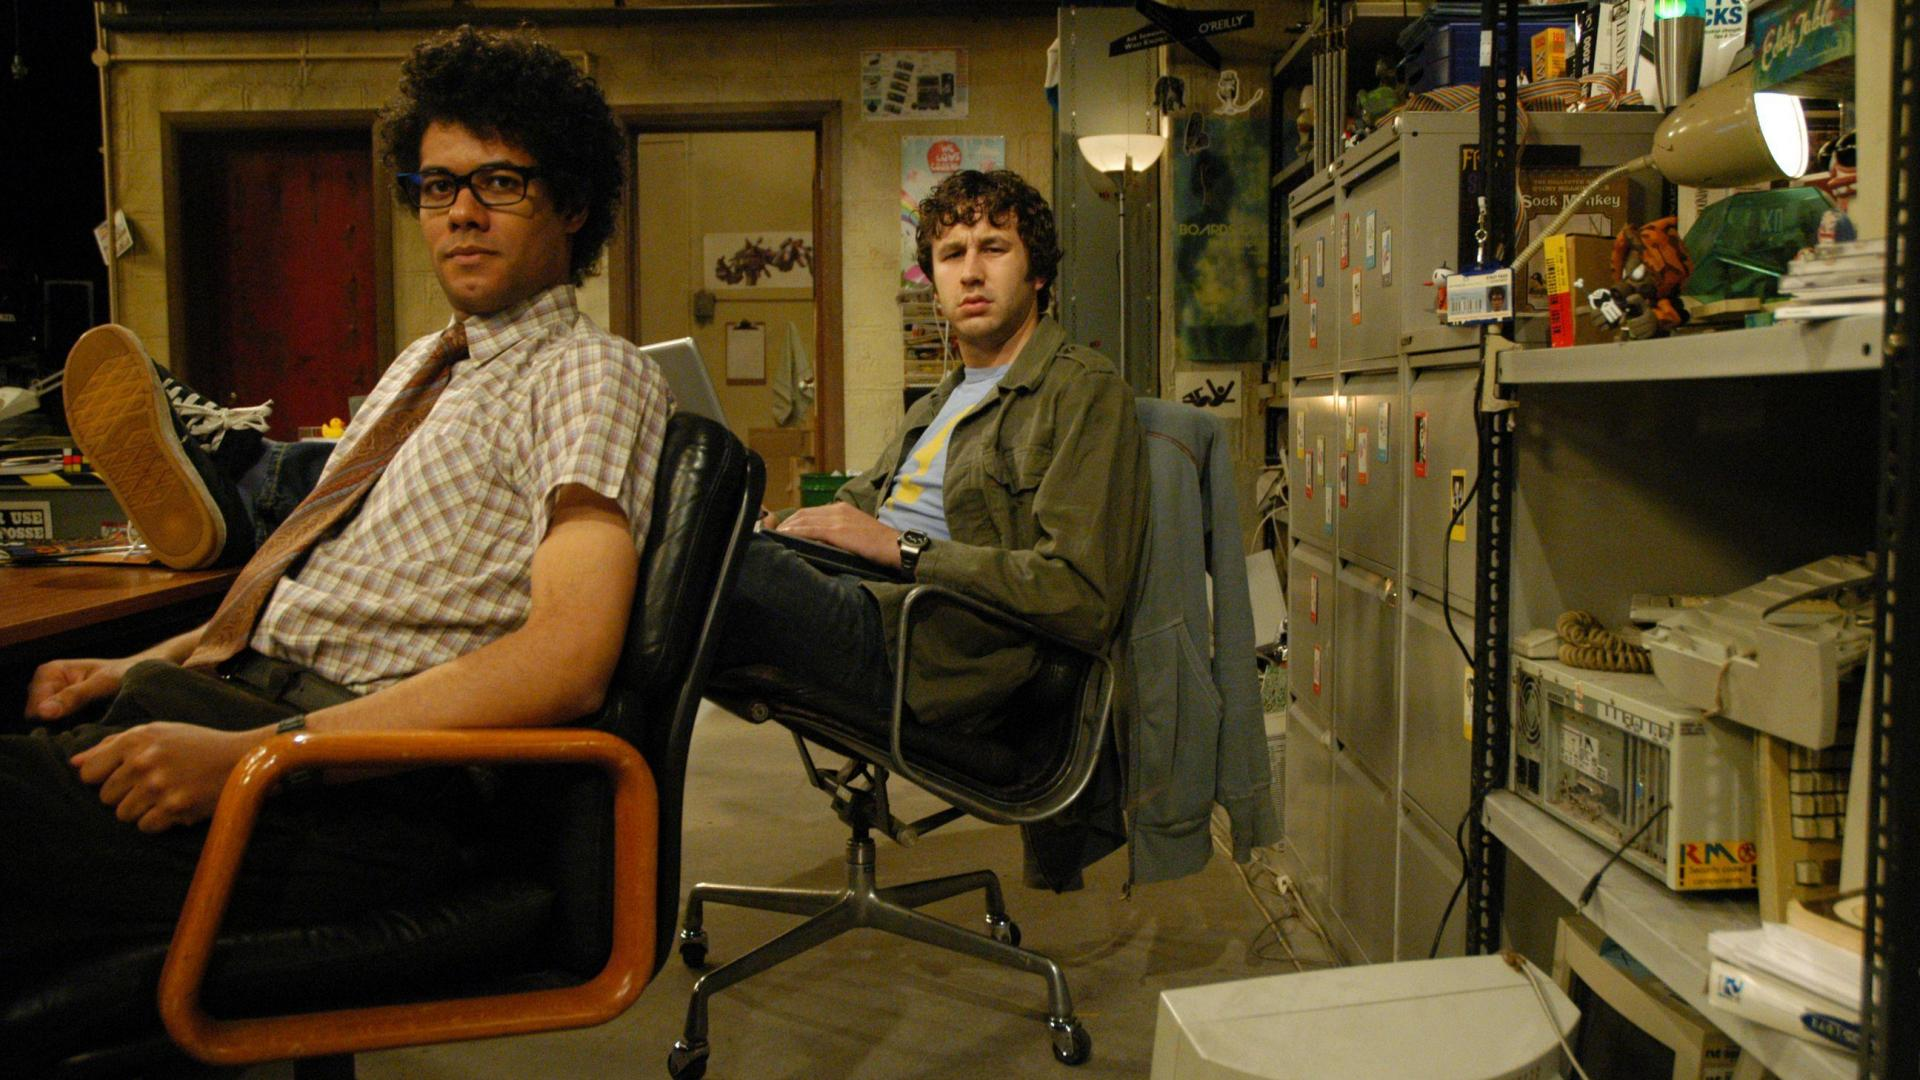 Still from The IT Crowd